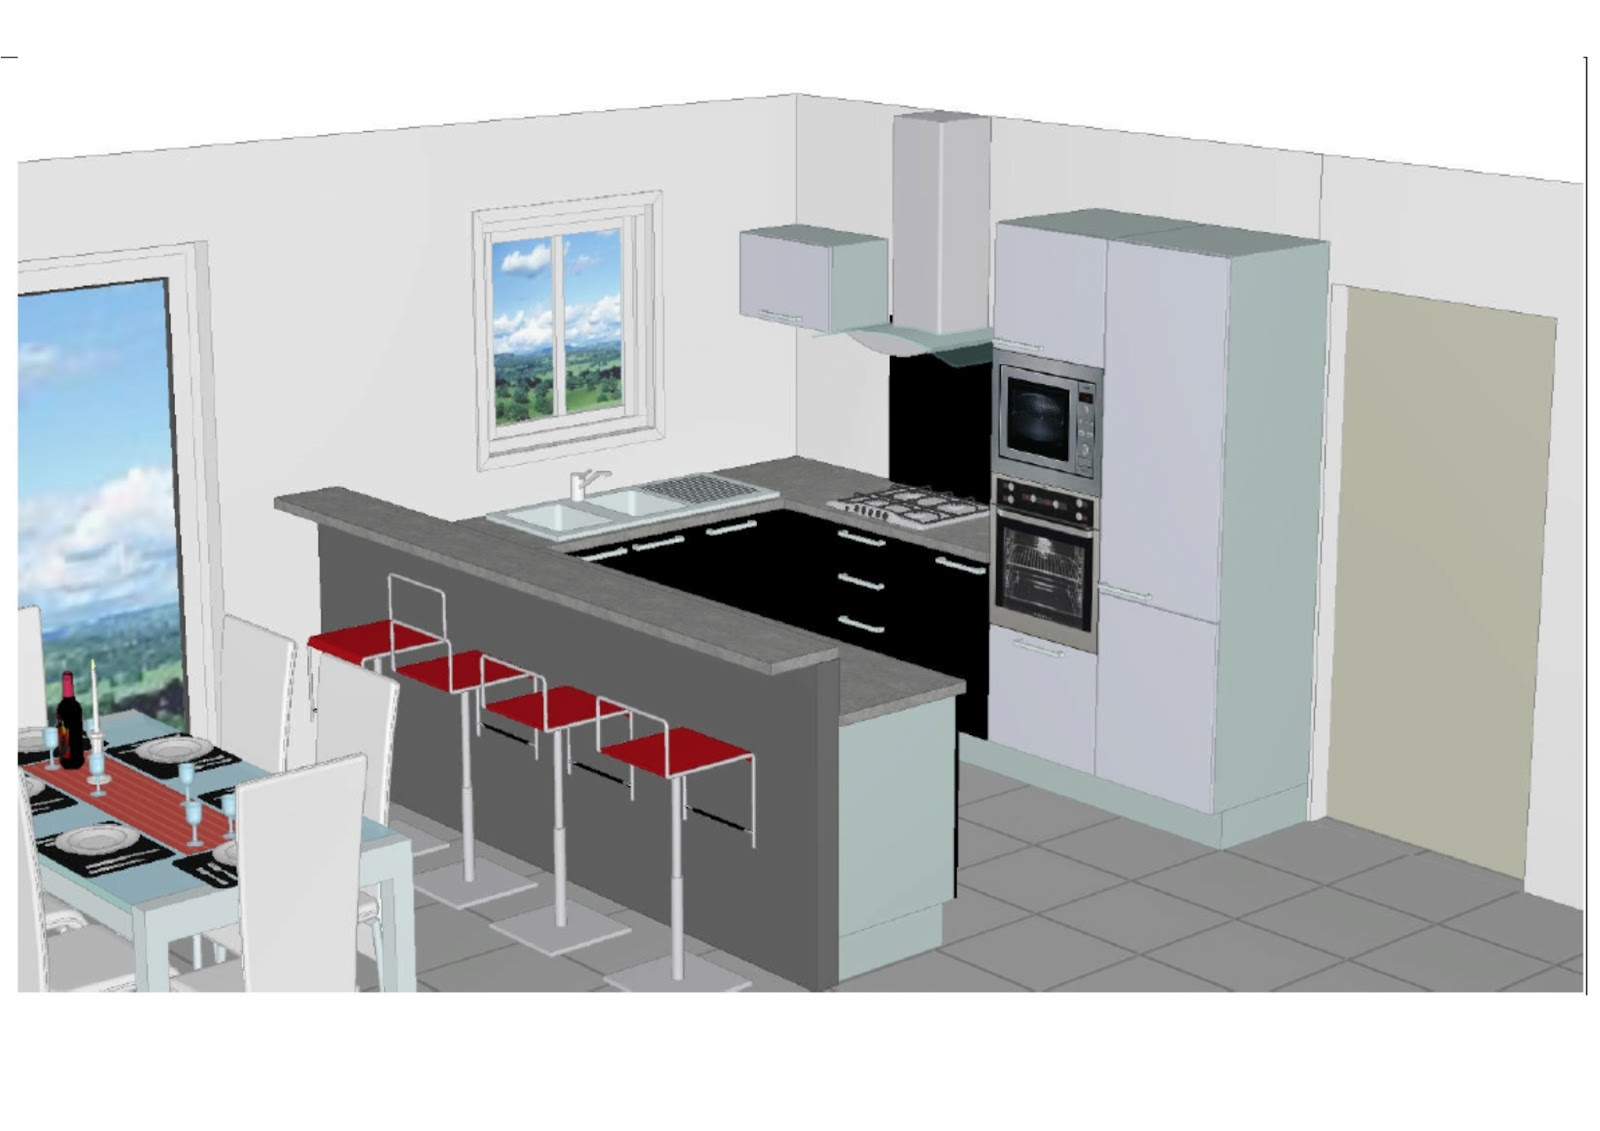 Maison sponsoris e 41 label rt 2012 oucques 41290 for Plan 3d cuisine